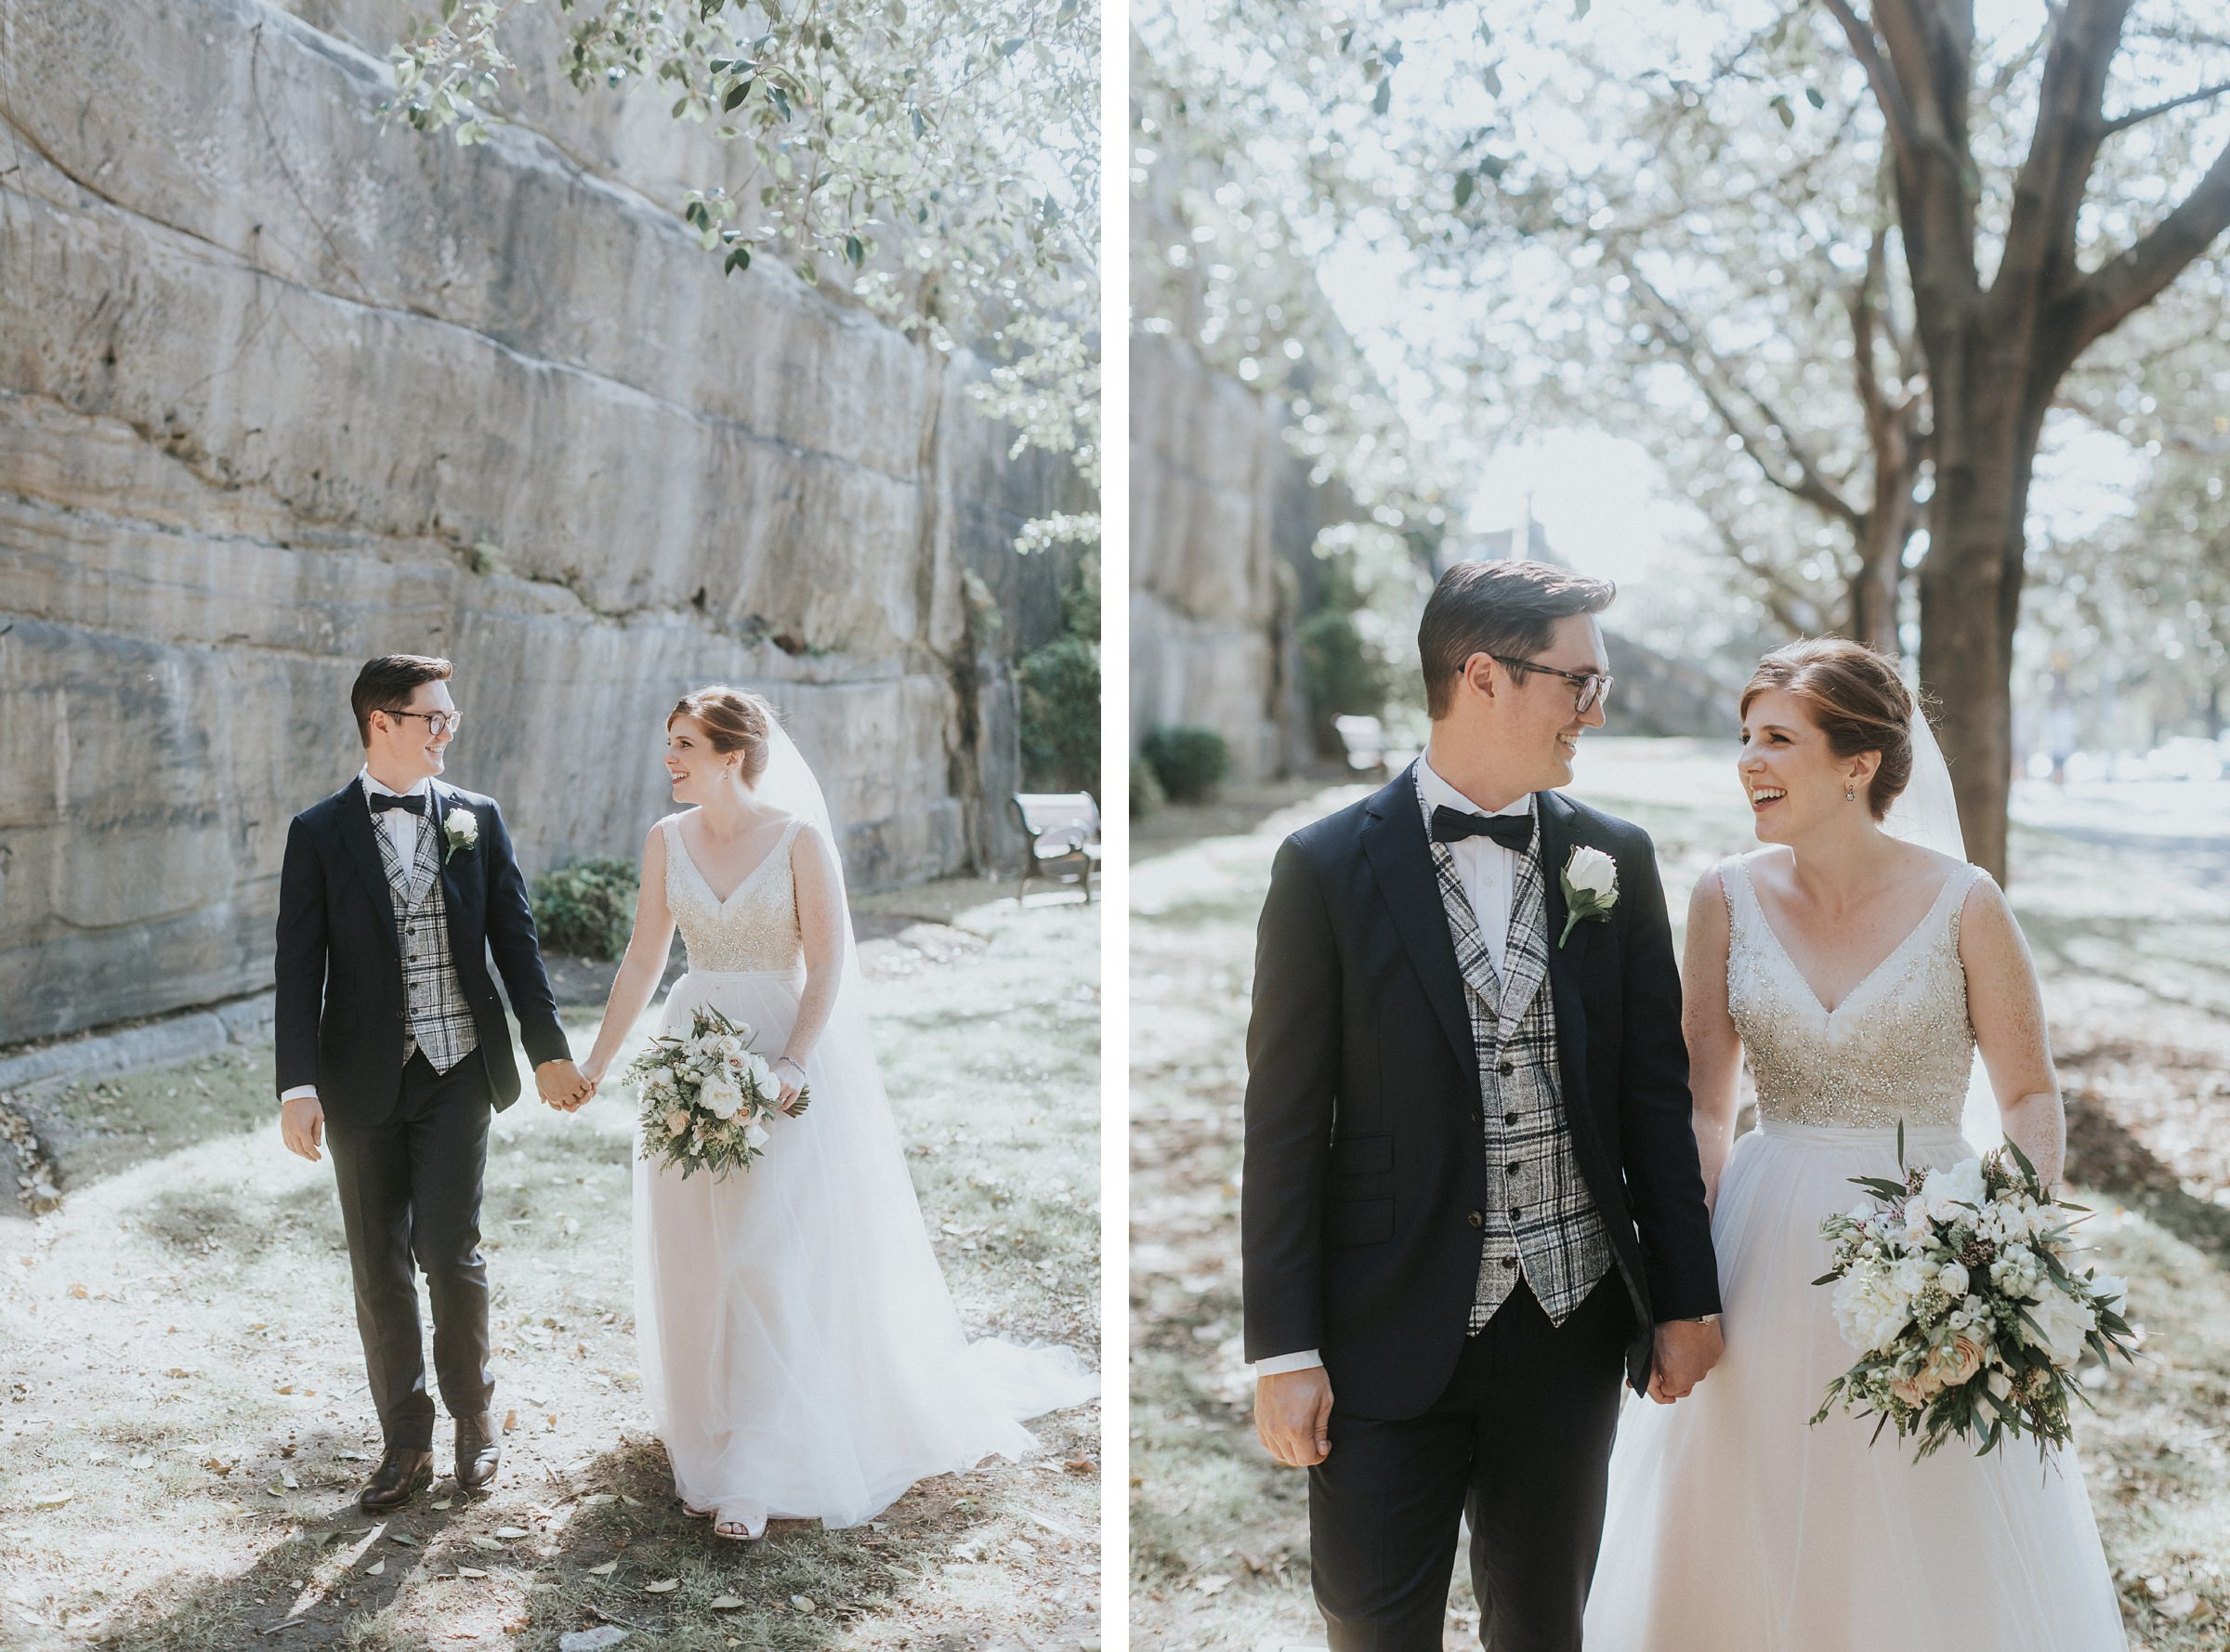 romantic candid wedding photography by jonathan david